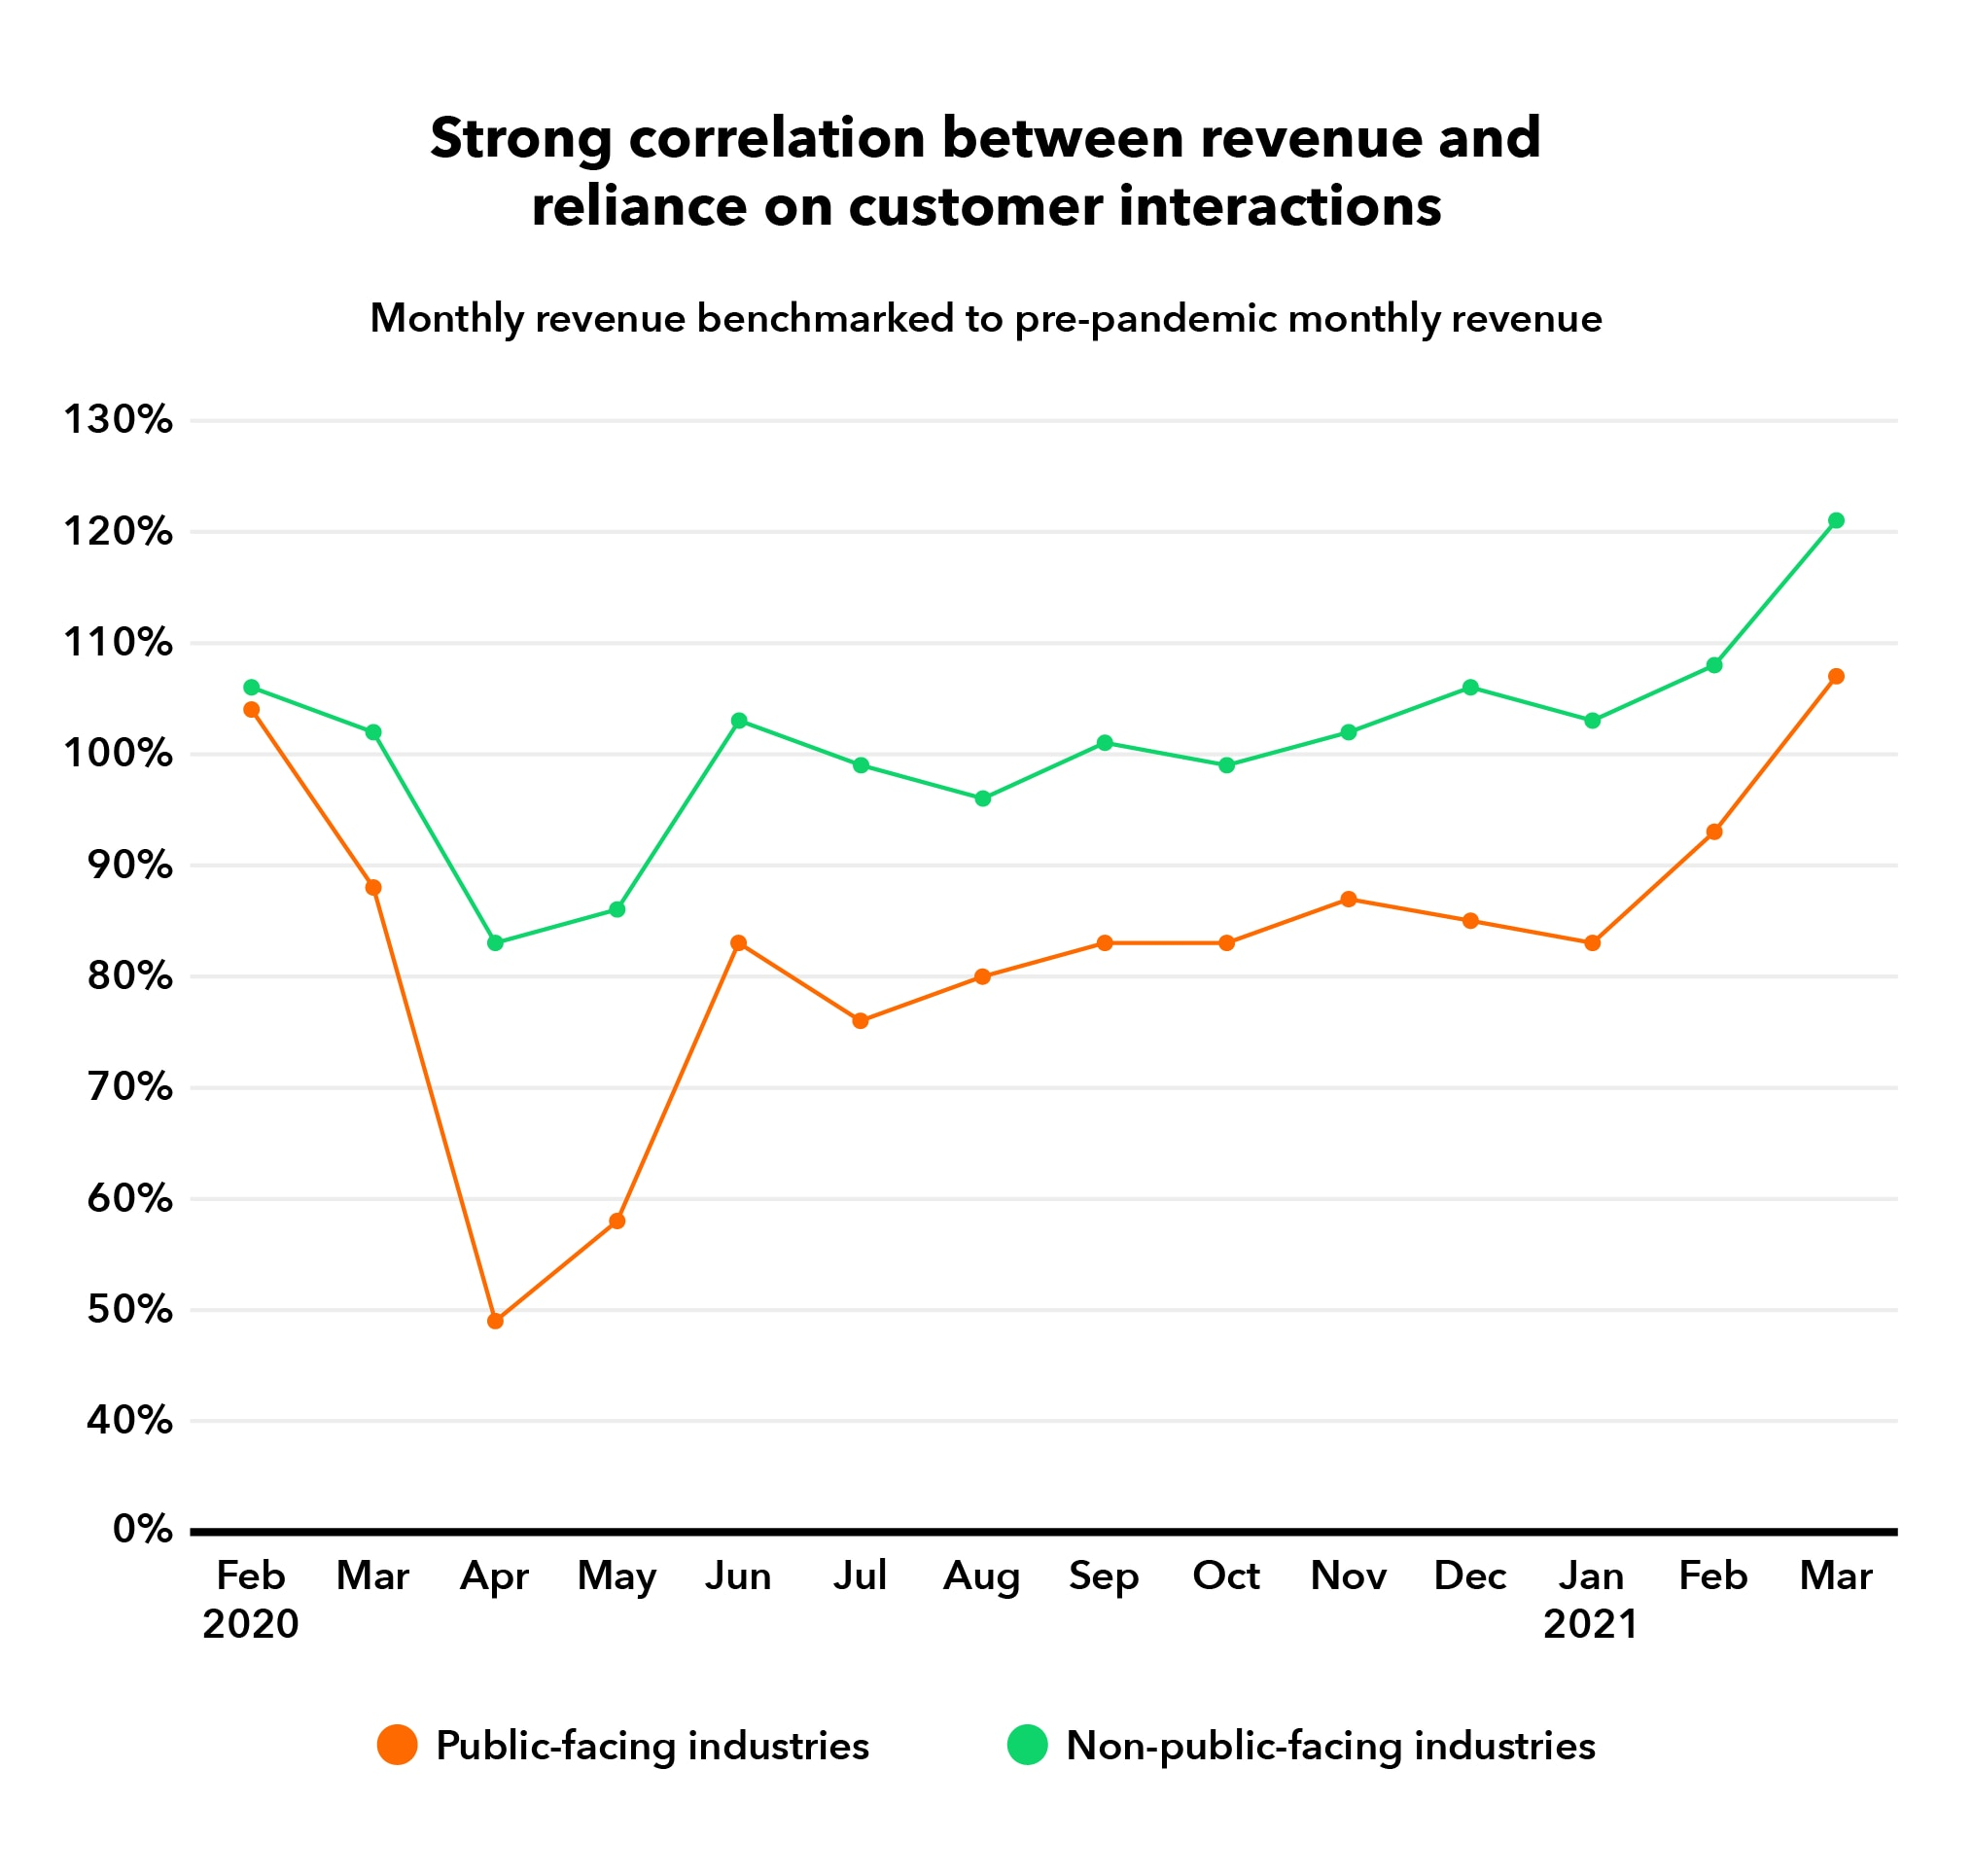 Strong correlation between revenue and reliance on customer interactions